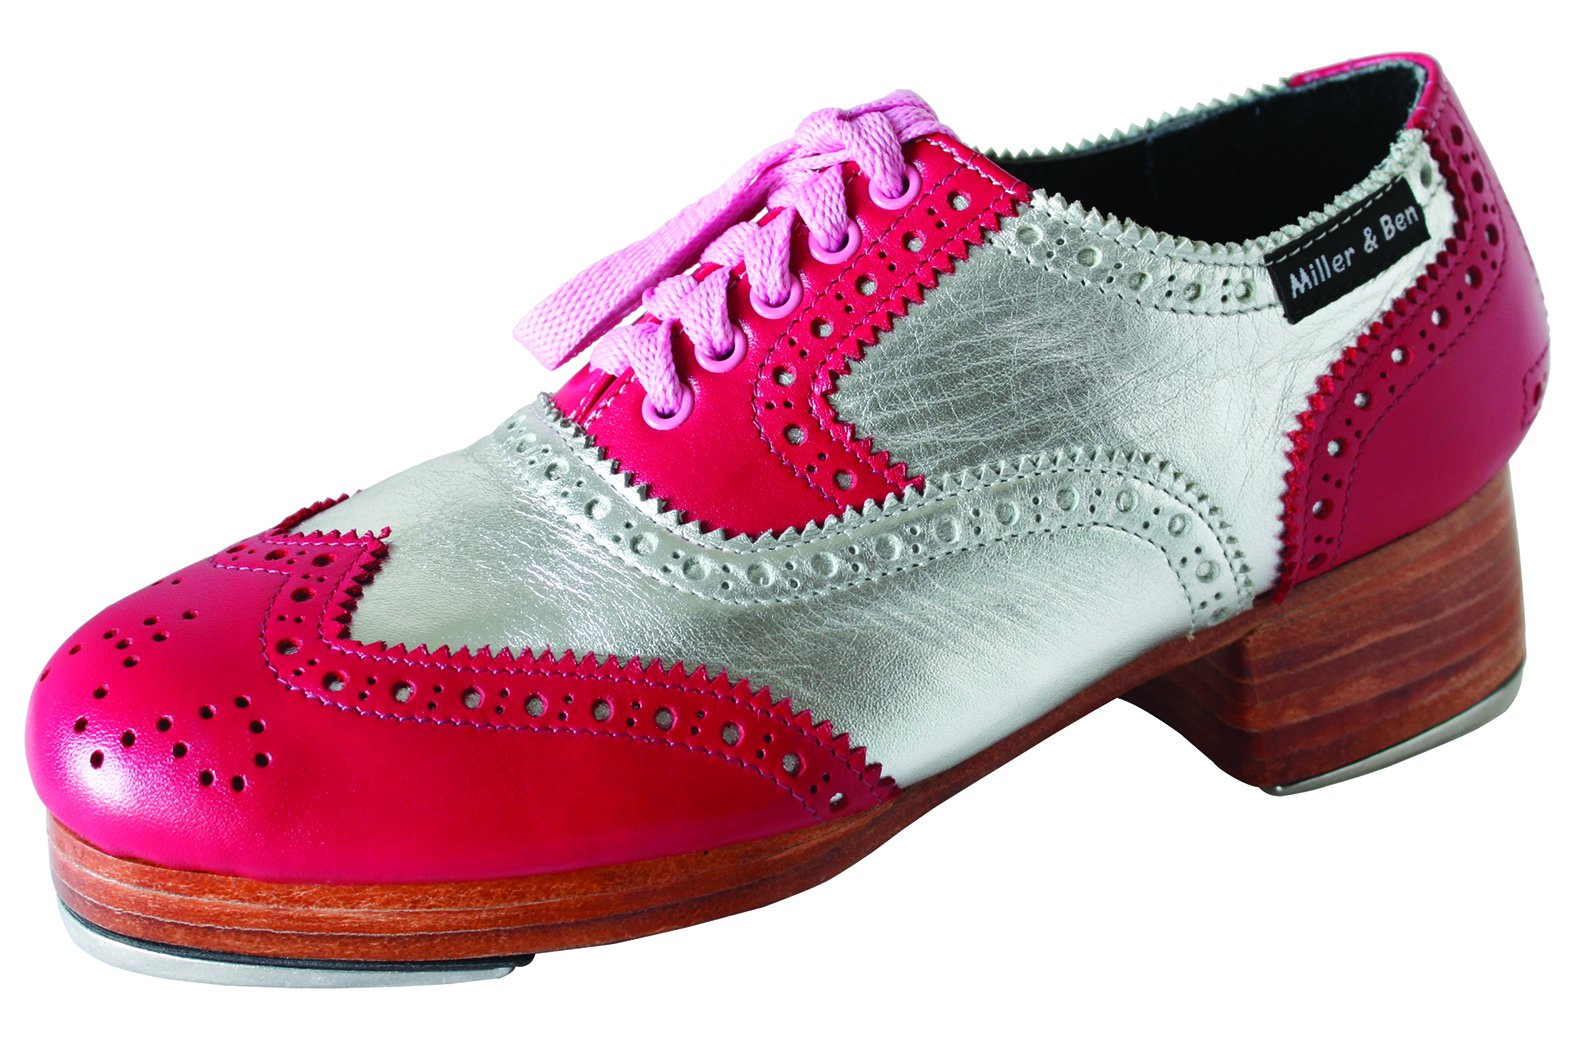 Miller & Ben Tap Shoes; Triple Threat; Pink & Silver (GT) - Royal - STANDARD SIZES ONLY (38.5 Regular)